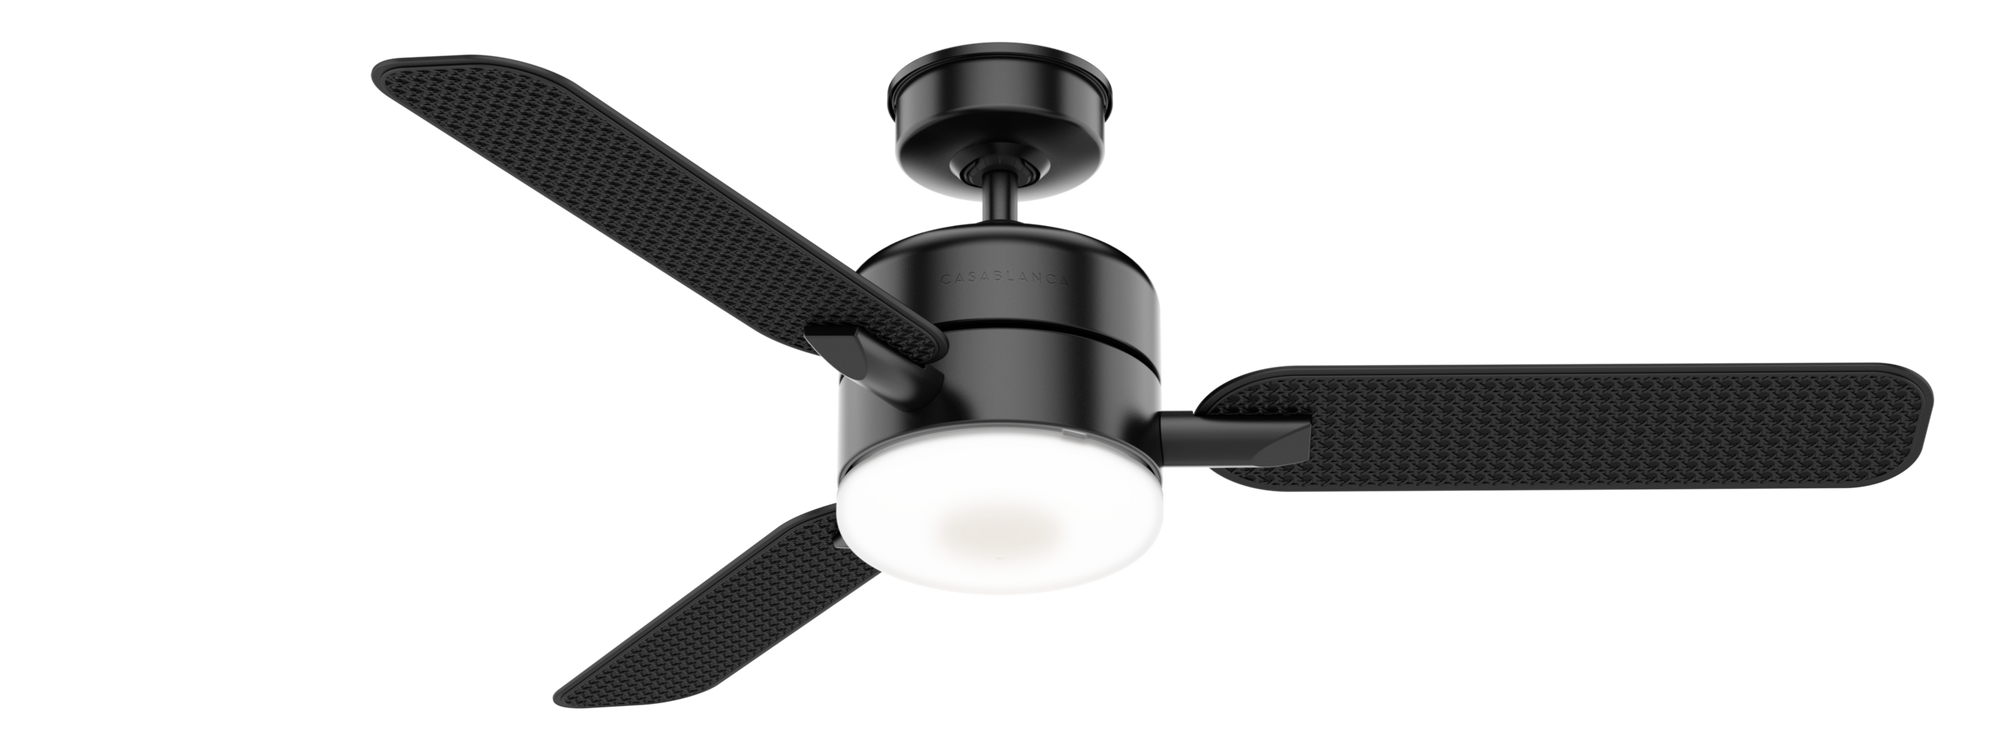 Casablanca Indoor/Outdoor Paume Ceiling Fan with LED LightJD inch, Black, 59428